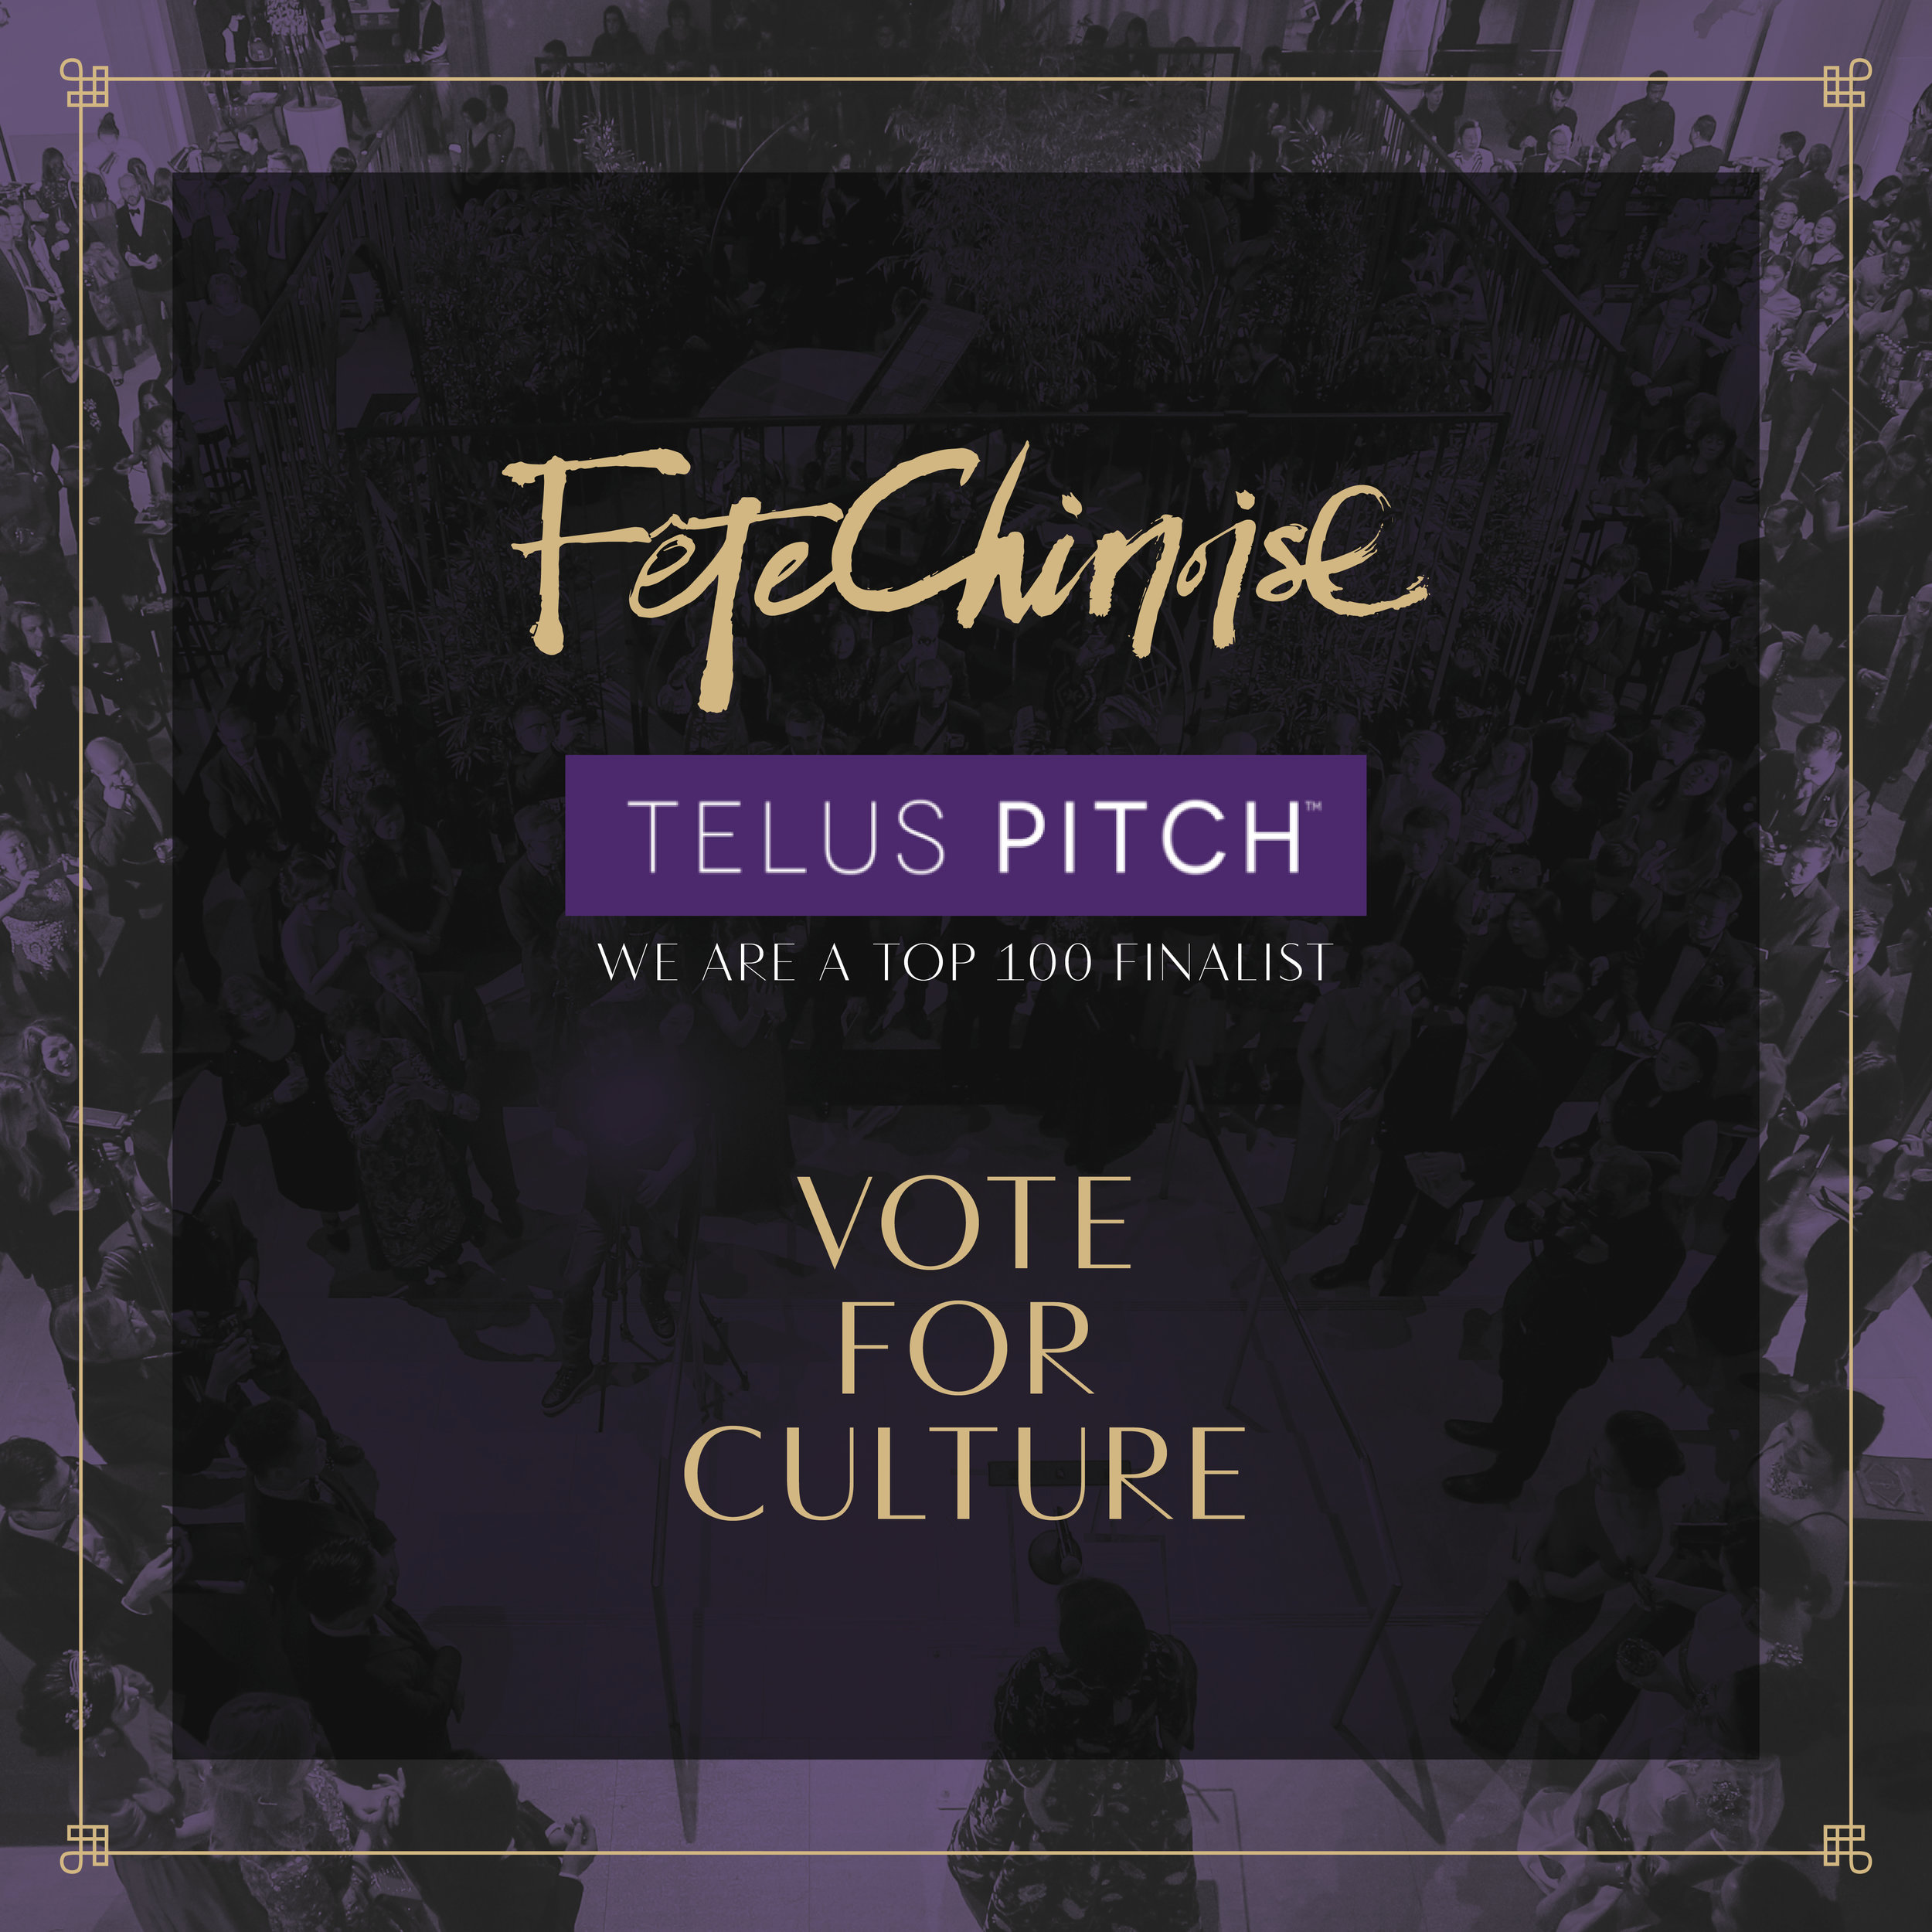 Vote Today!* - Fête Chinoise is so proud to be celebrating our 5th year this year. Through our magazine and events with wonderful collaborators, we have touched many hearts and aspire to reach more! In the past, we have donated proceeds from the Fête Chinoise Signature Event to charities: Markham Stouffville Hospital, Orbis, Mon Sheong Foundation and fu-GEN Theatre company. We will continue to raise the bar, and help to inspire our cultural market. Thank you for being a part of it all!